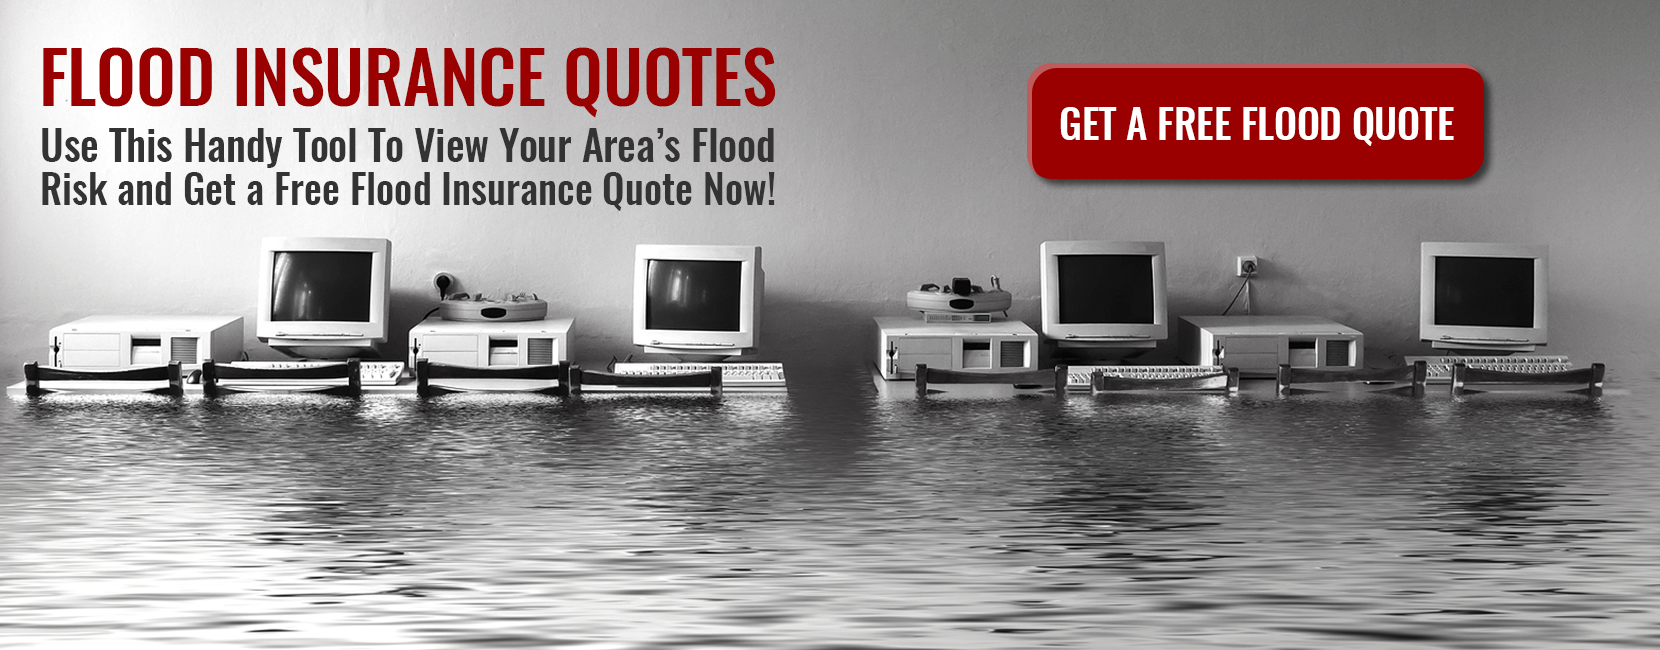 Florida Flood Insurance - Click to view your area's flood risk and get a free flood insurance quote now!